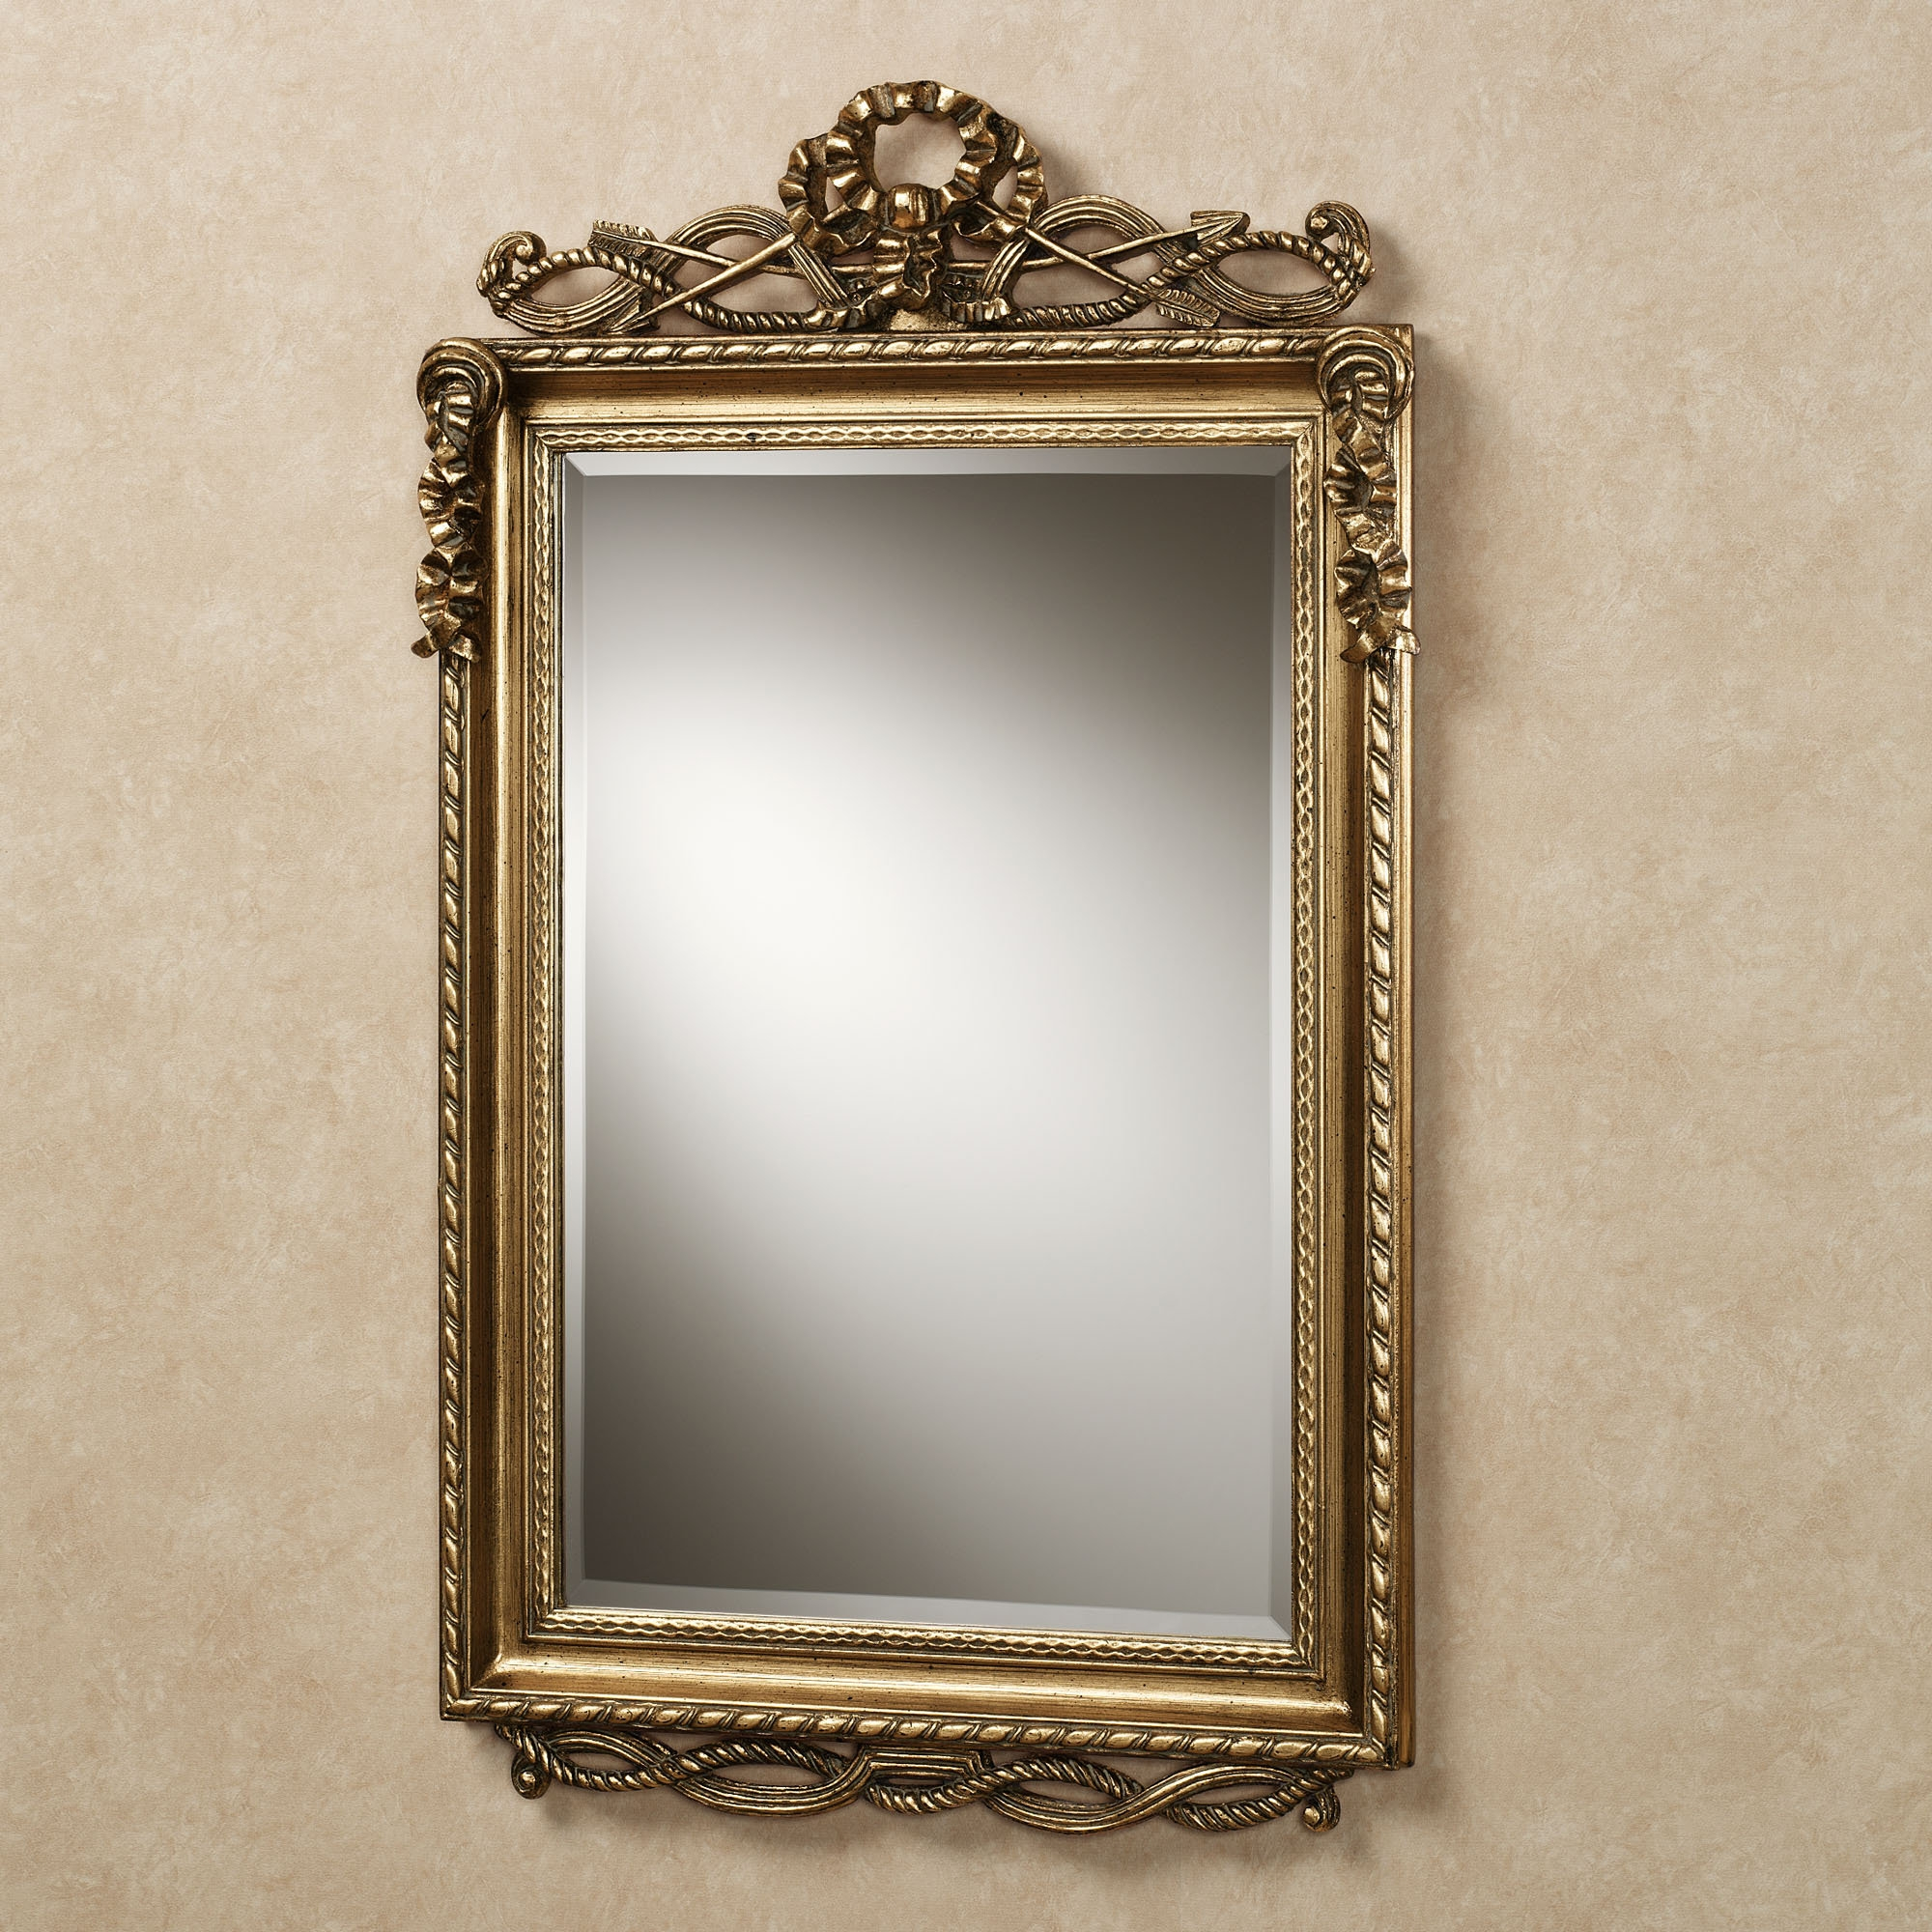 Top 15 old fashioned mirrors for sale mirror ideas for Mirrors for sale